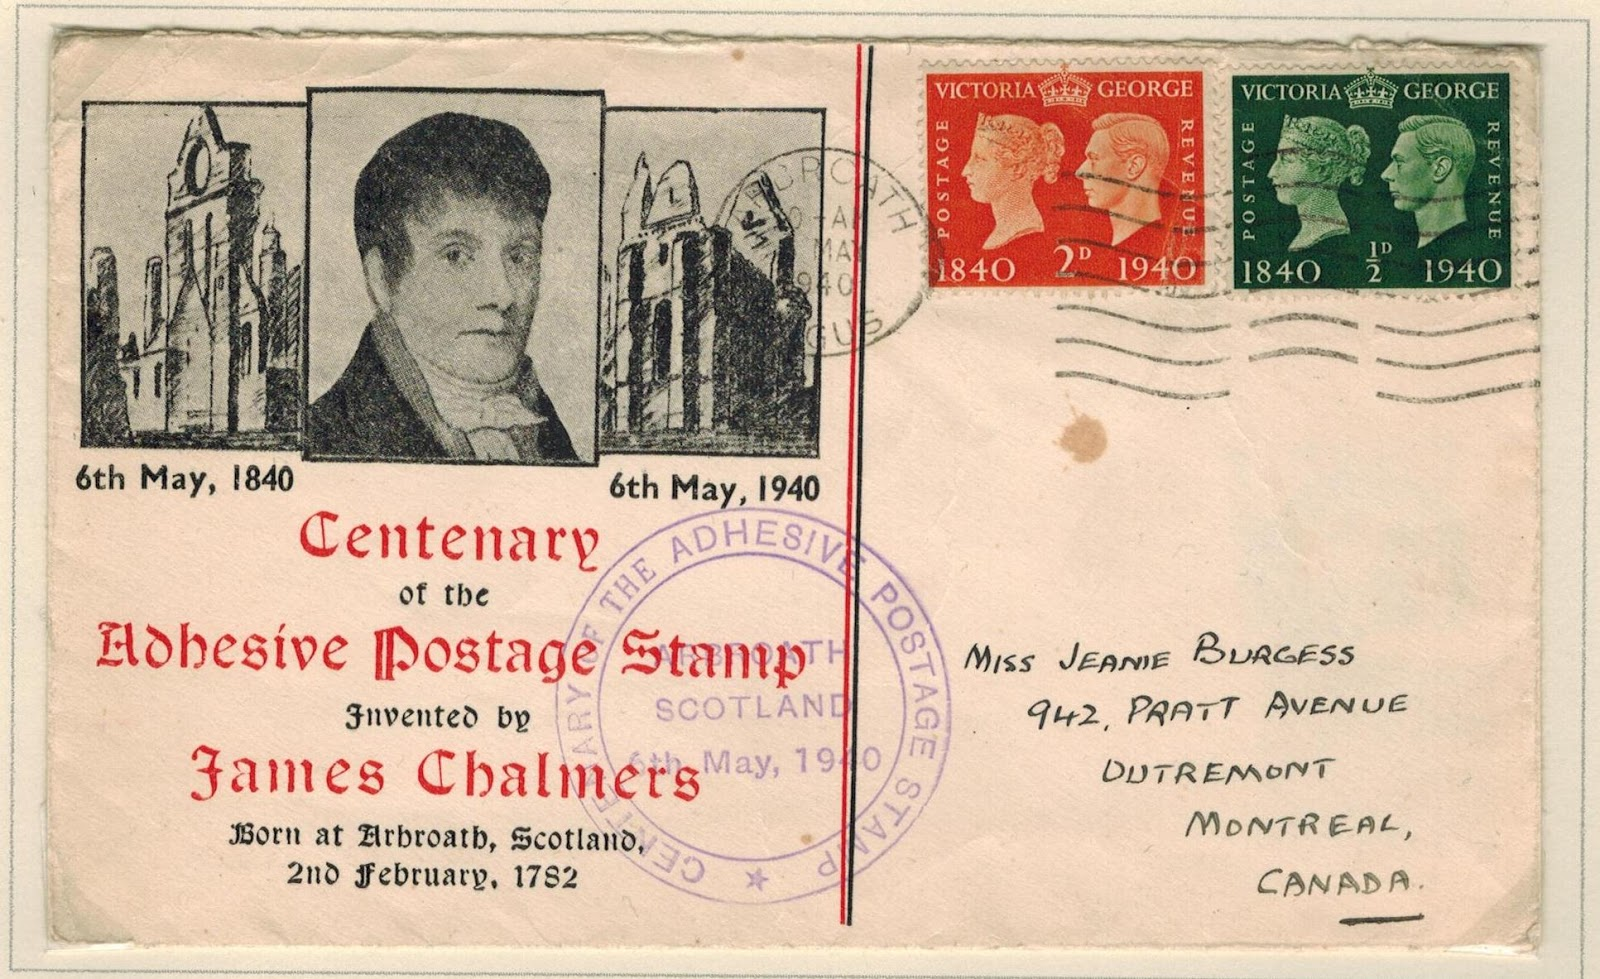 All the credits for inventing first adhesive Postage Stamp also goes to a Scottish James Chalmers